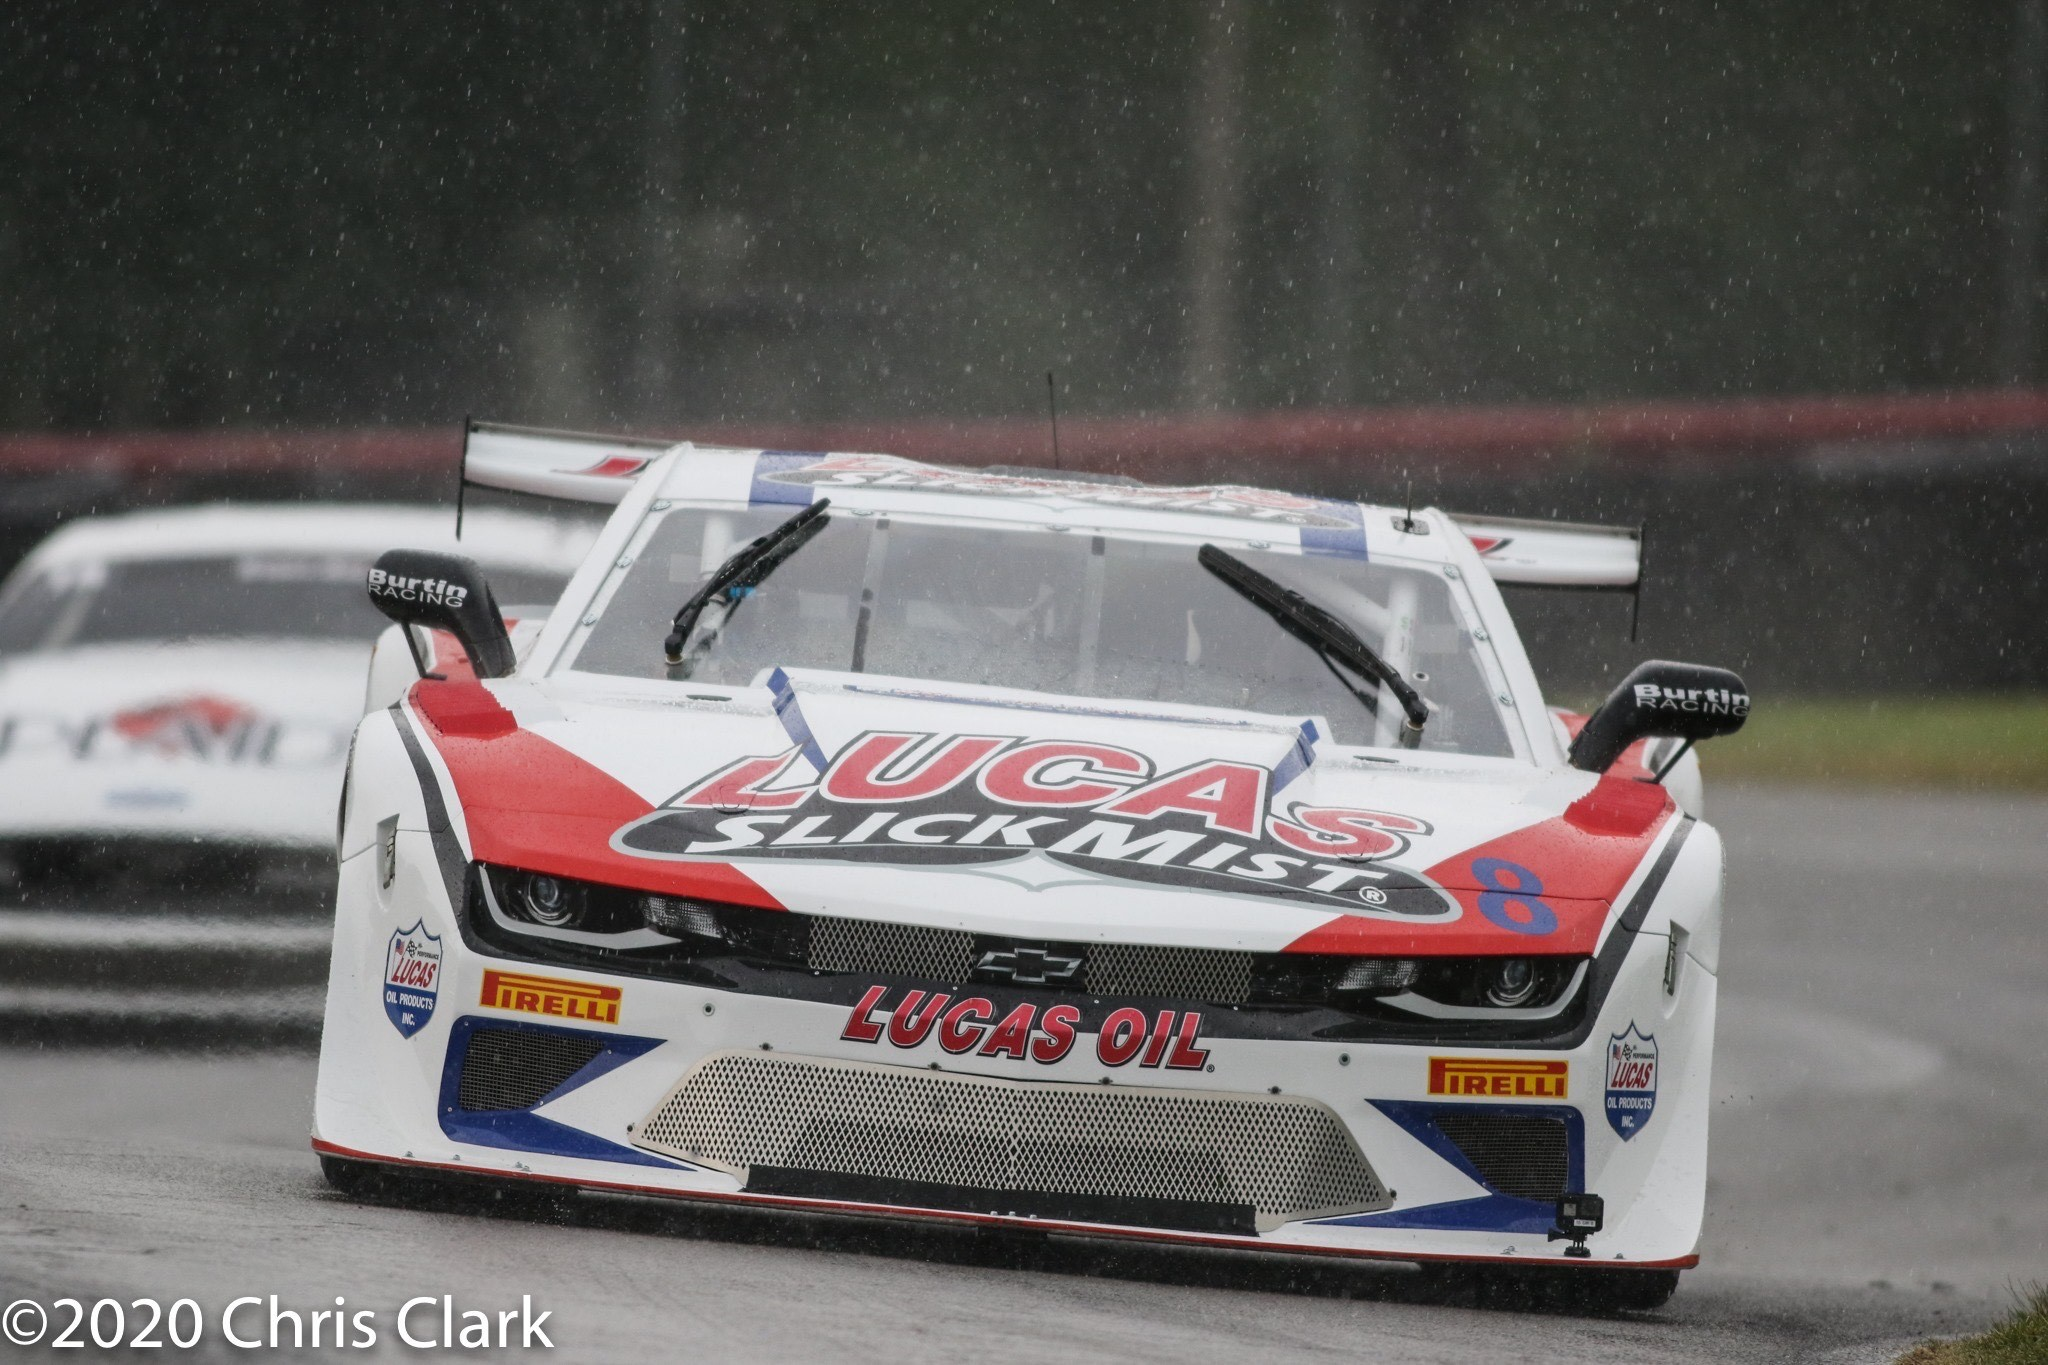 Tomy Drissi and Lucas SlickMist head to the Road Atlanta Double Header as Trans Am Season Comes to a Close